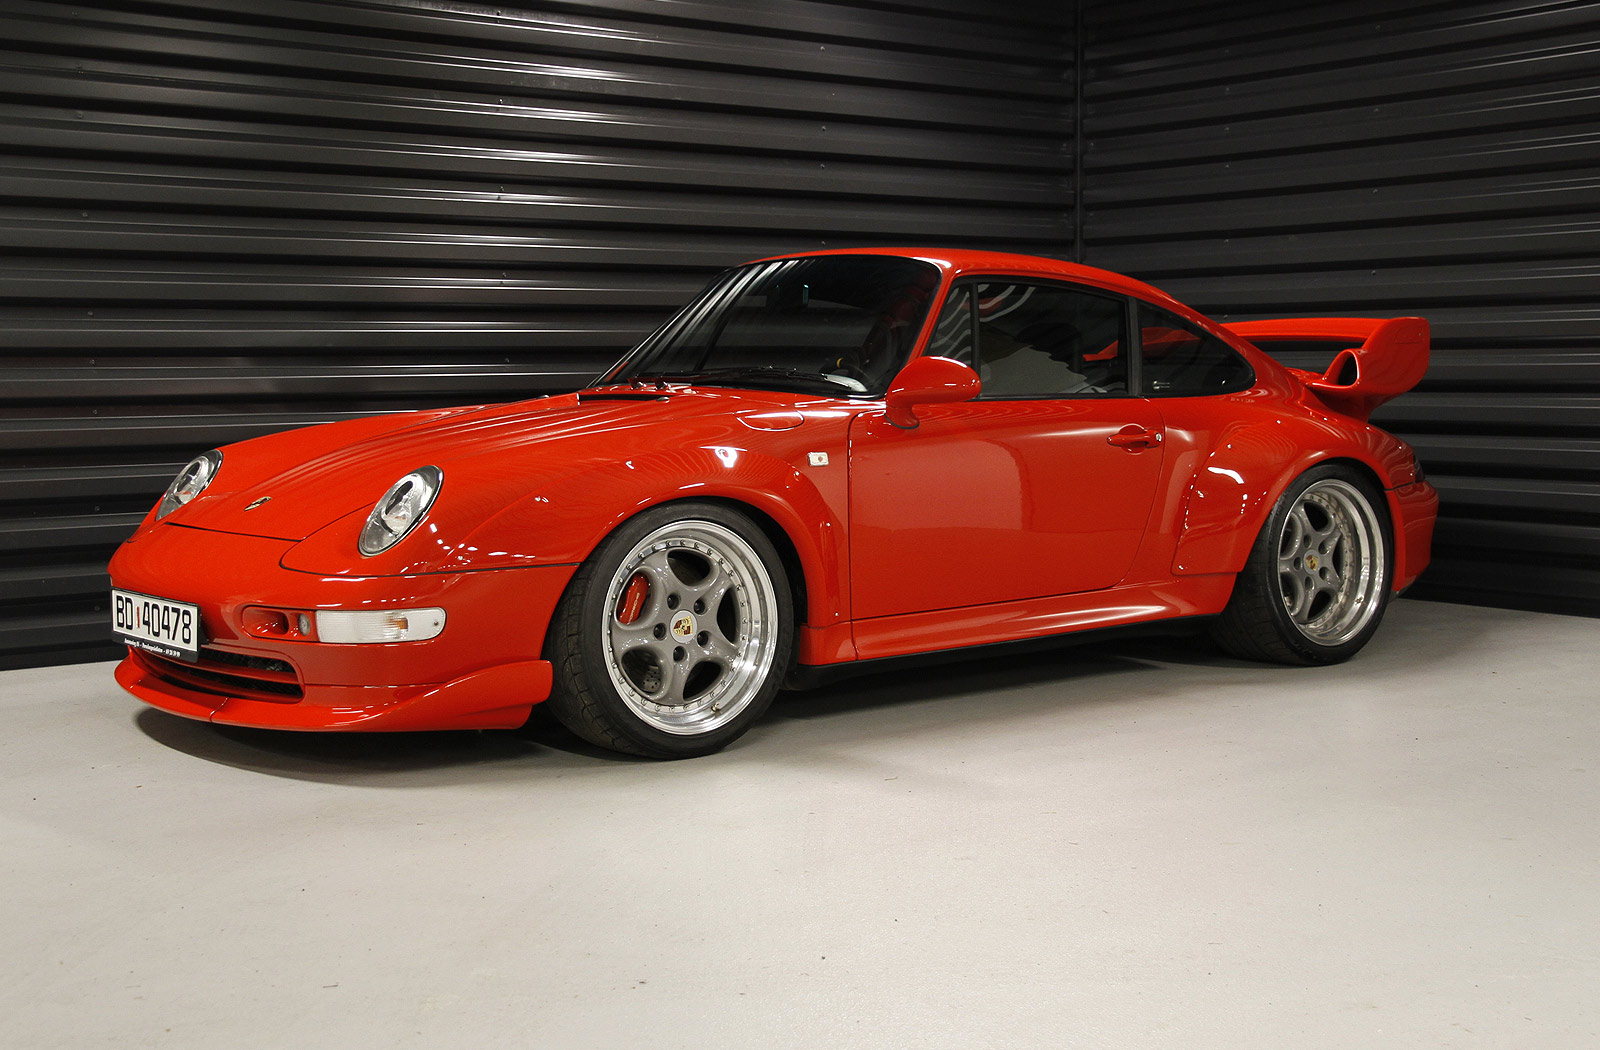 1996_Porsche_911_993_GT2_-_Flickr_-_The_Car_Spy_(4)